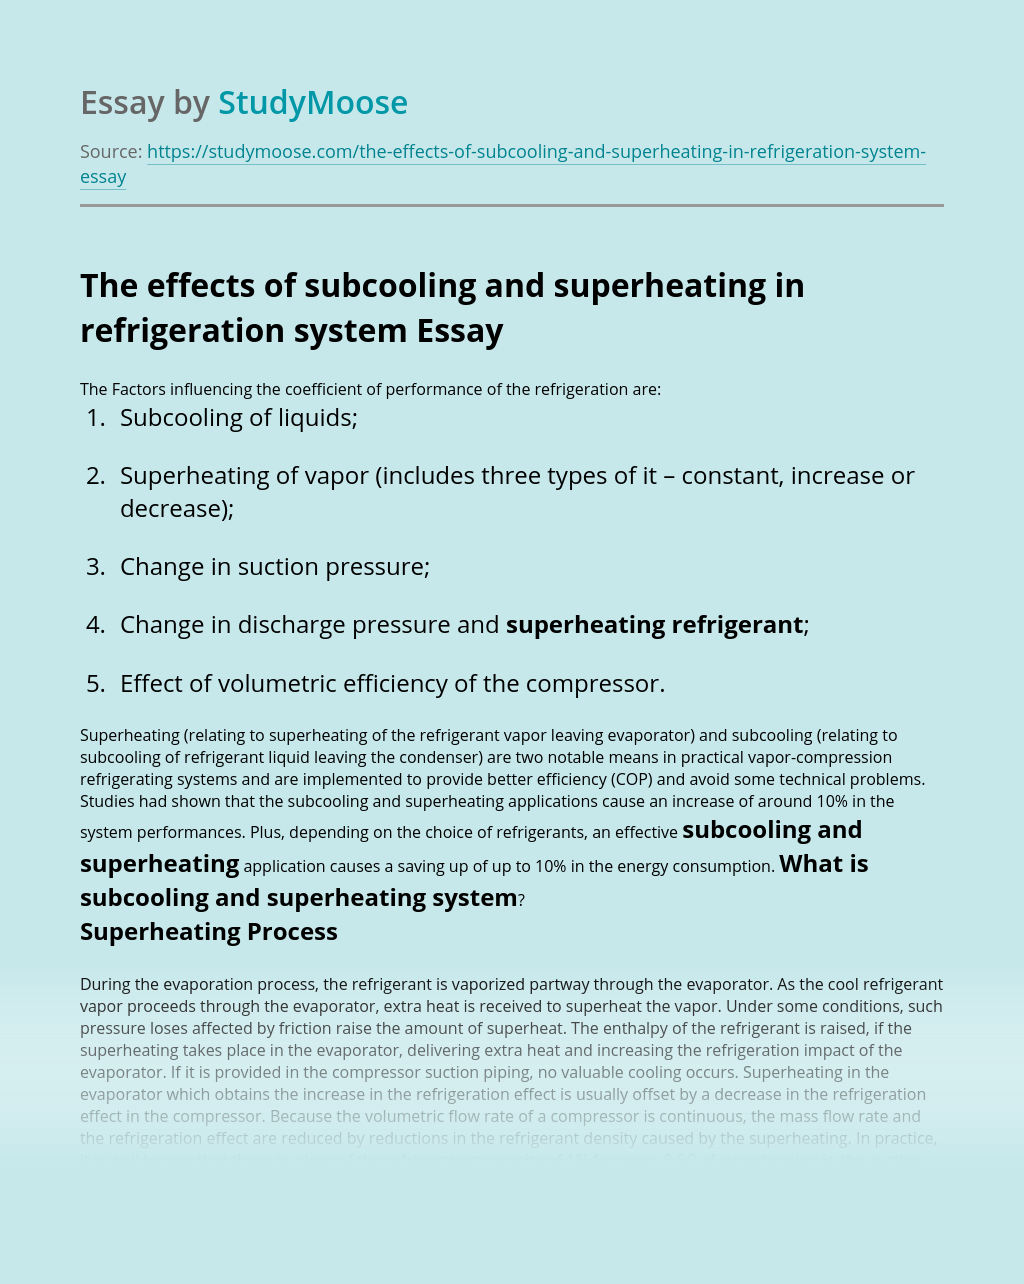 The effects of subcooling and superheating in refrigeration system